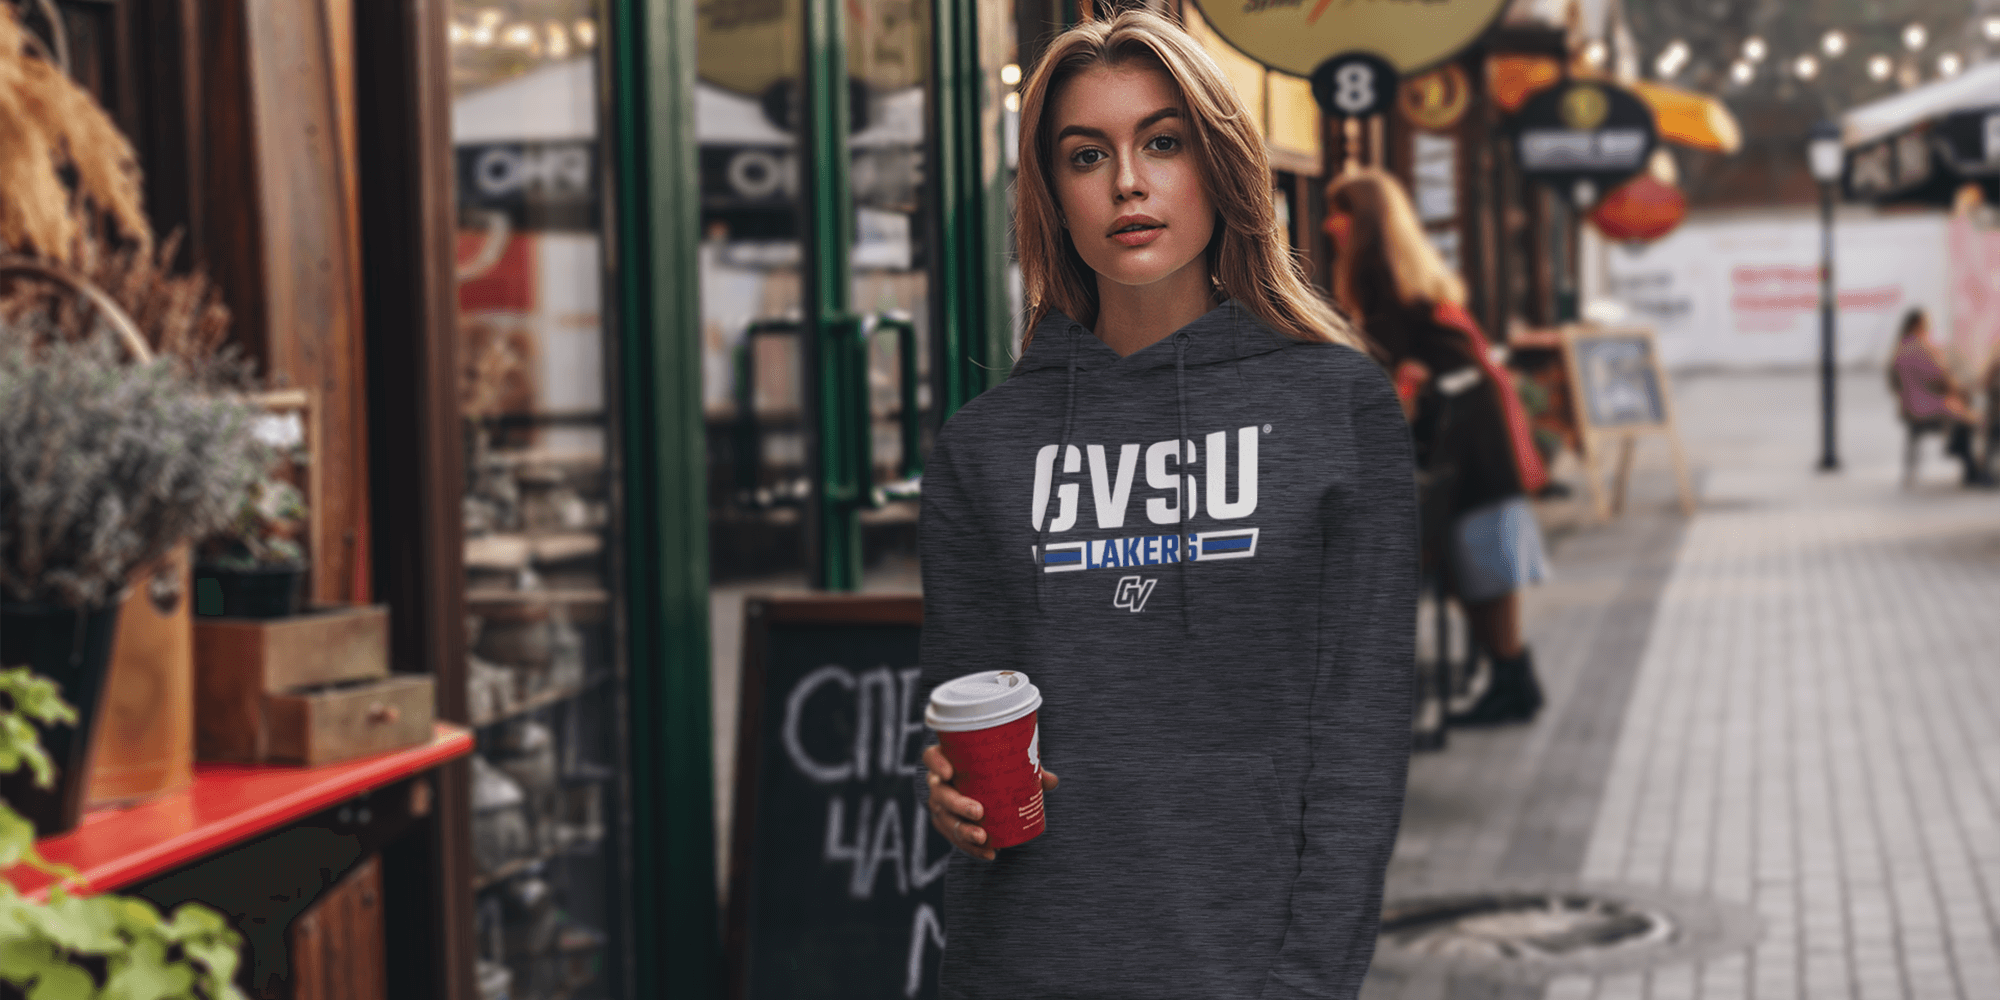 a woman wearing a Campus Den GVSU hoodie and holding a coffee